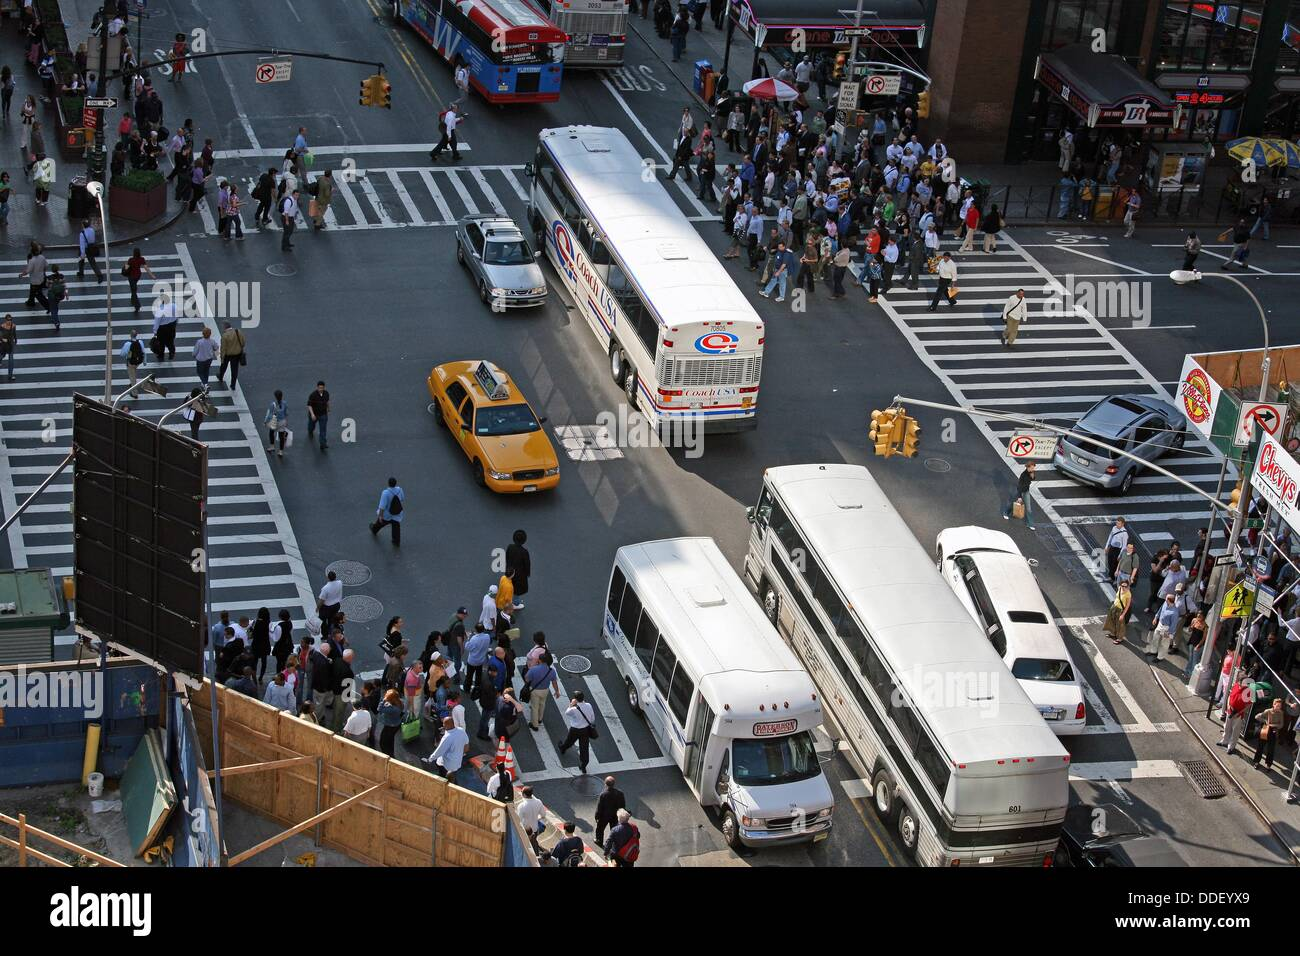 42nd Street shot from above - Stock Image